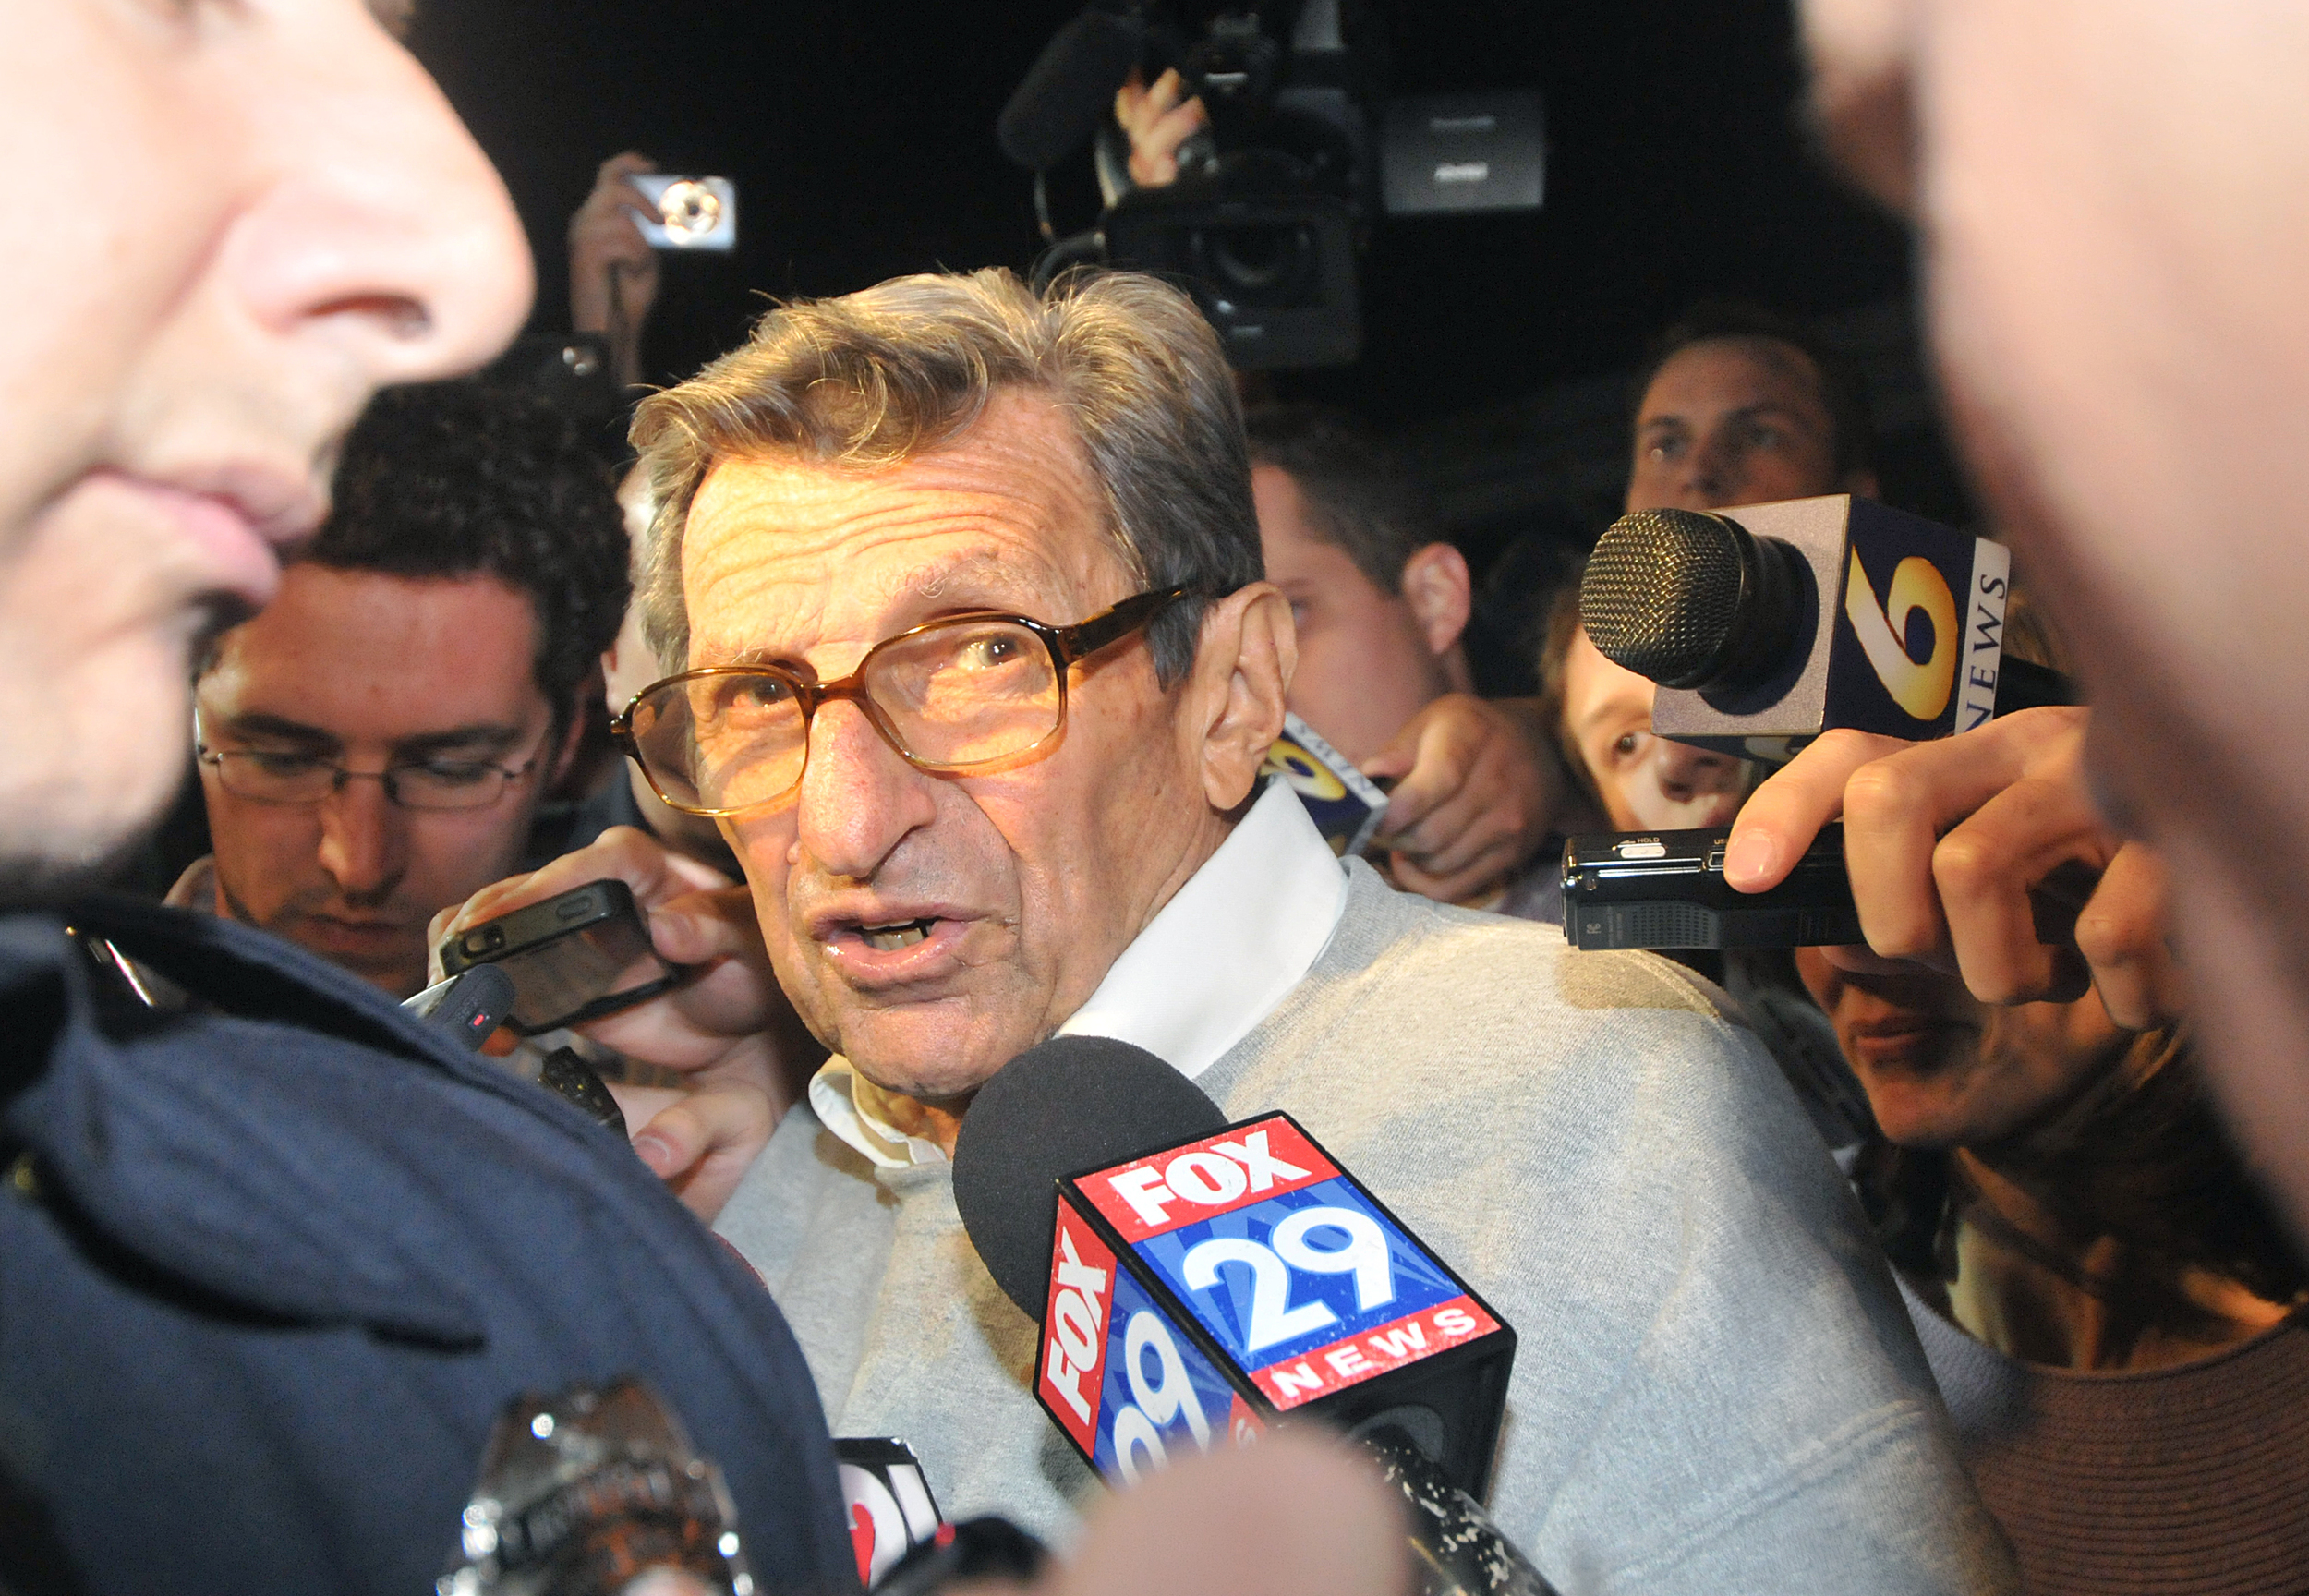 Head coach Joe Paterno speaks outside of his home in State College on Tuesday night to members of the media. A group of around 300 students gathered in support of Paterno, held signs, and sang the Alma Mater.